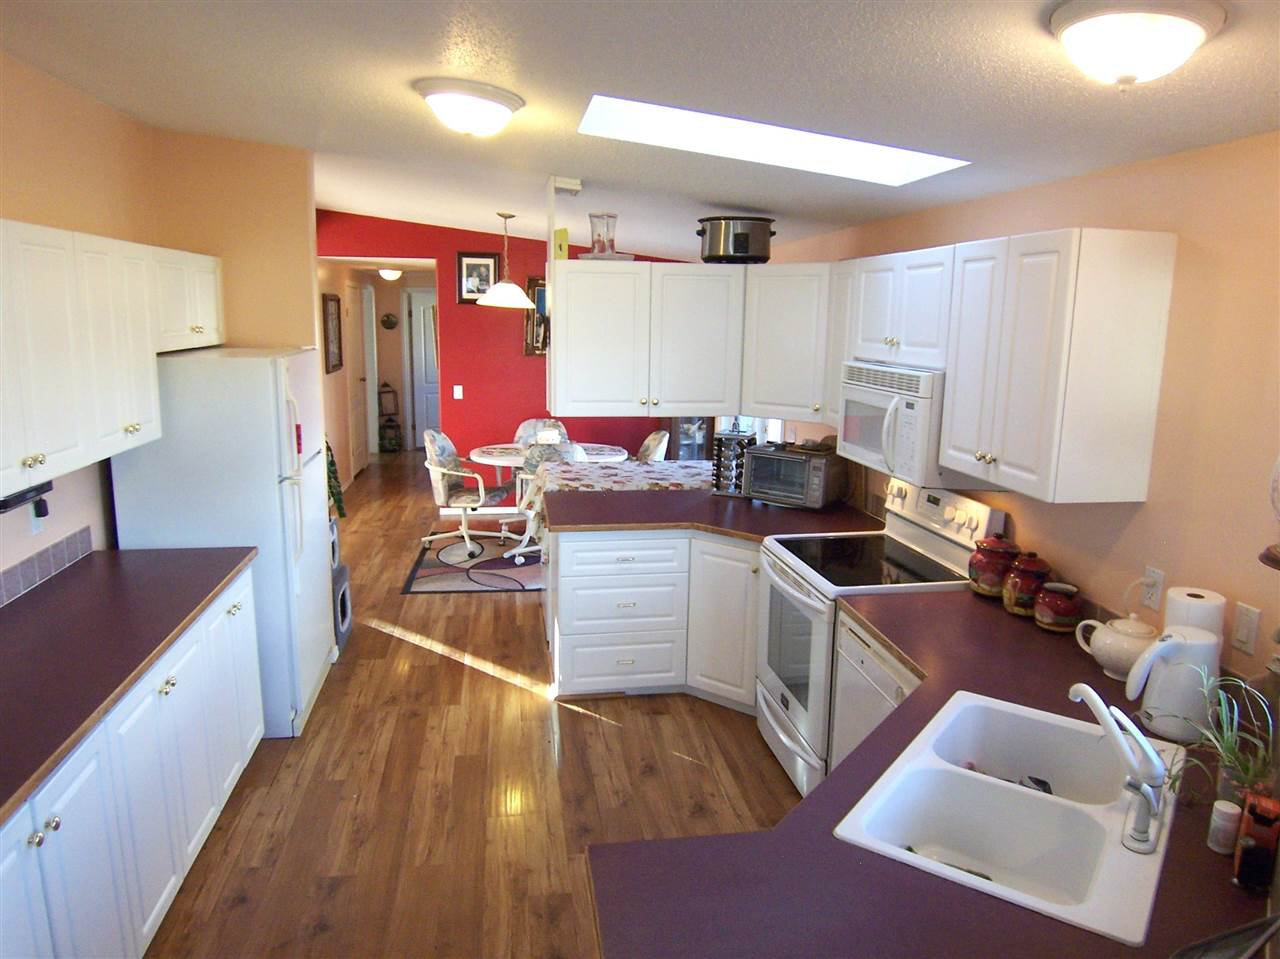 Photo 5: Photos: 2140 NORWOOD Street in Prince George: VLA Manufactured Home for sale (PG City Central (Zone 72))  : MLS®# R2120455